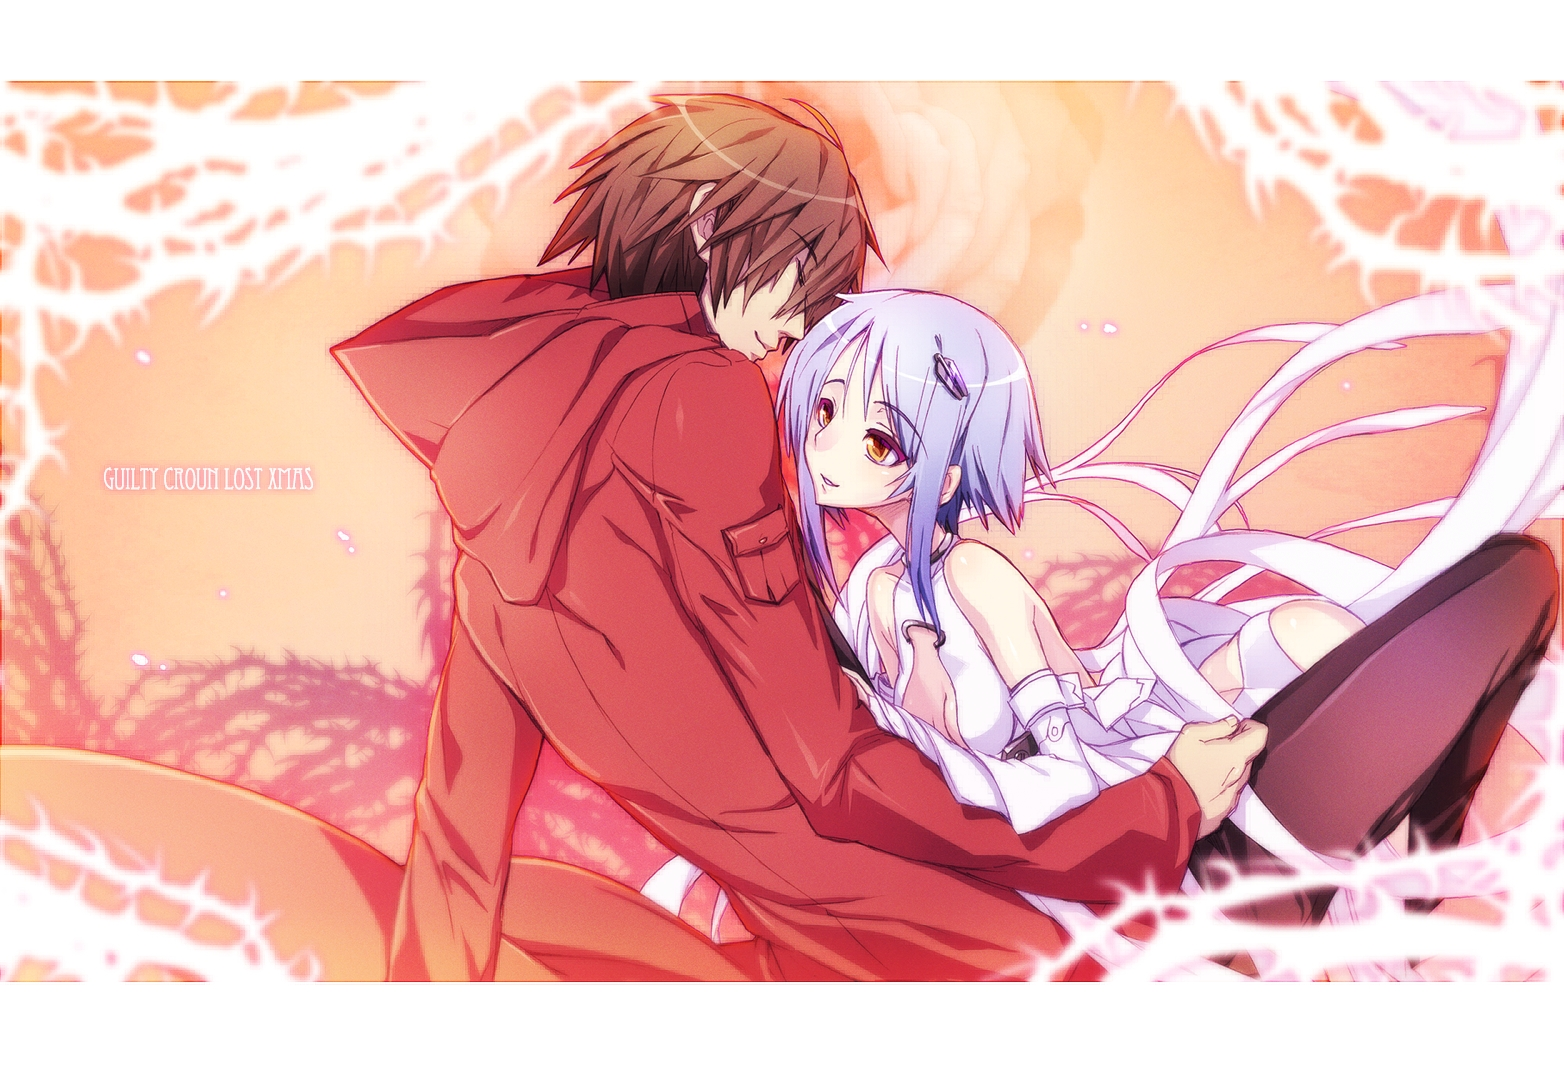 GUILTY CROWN: Lost Christmas Image #1244075 - Zerochan Anime Image ...